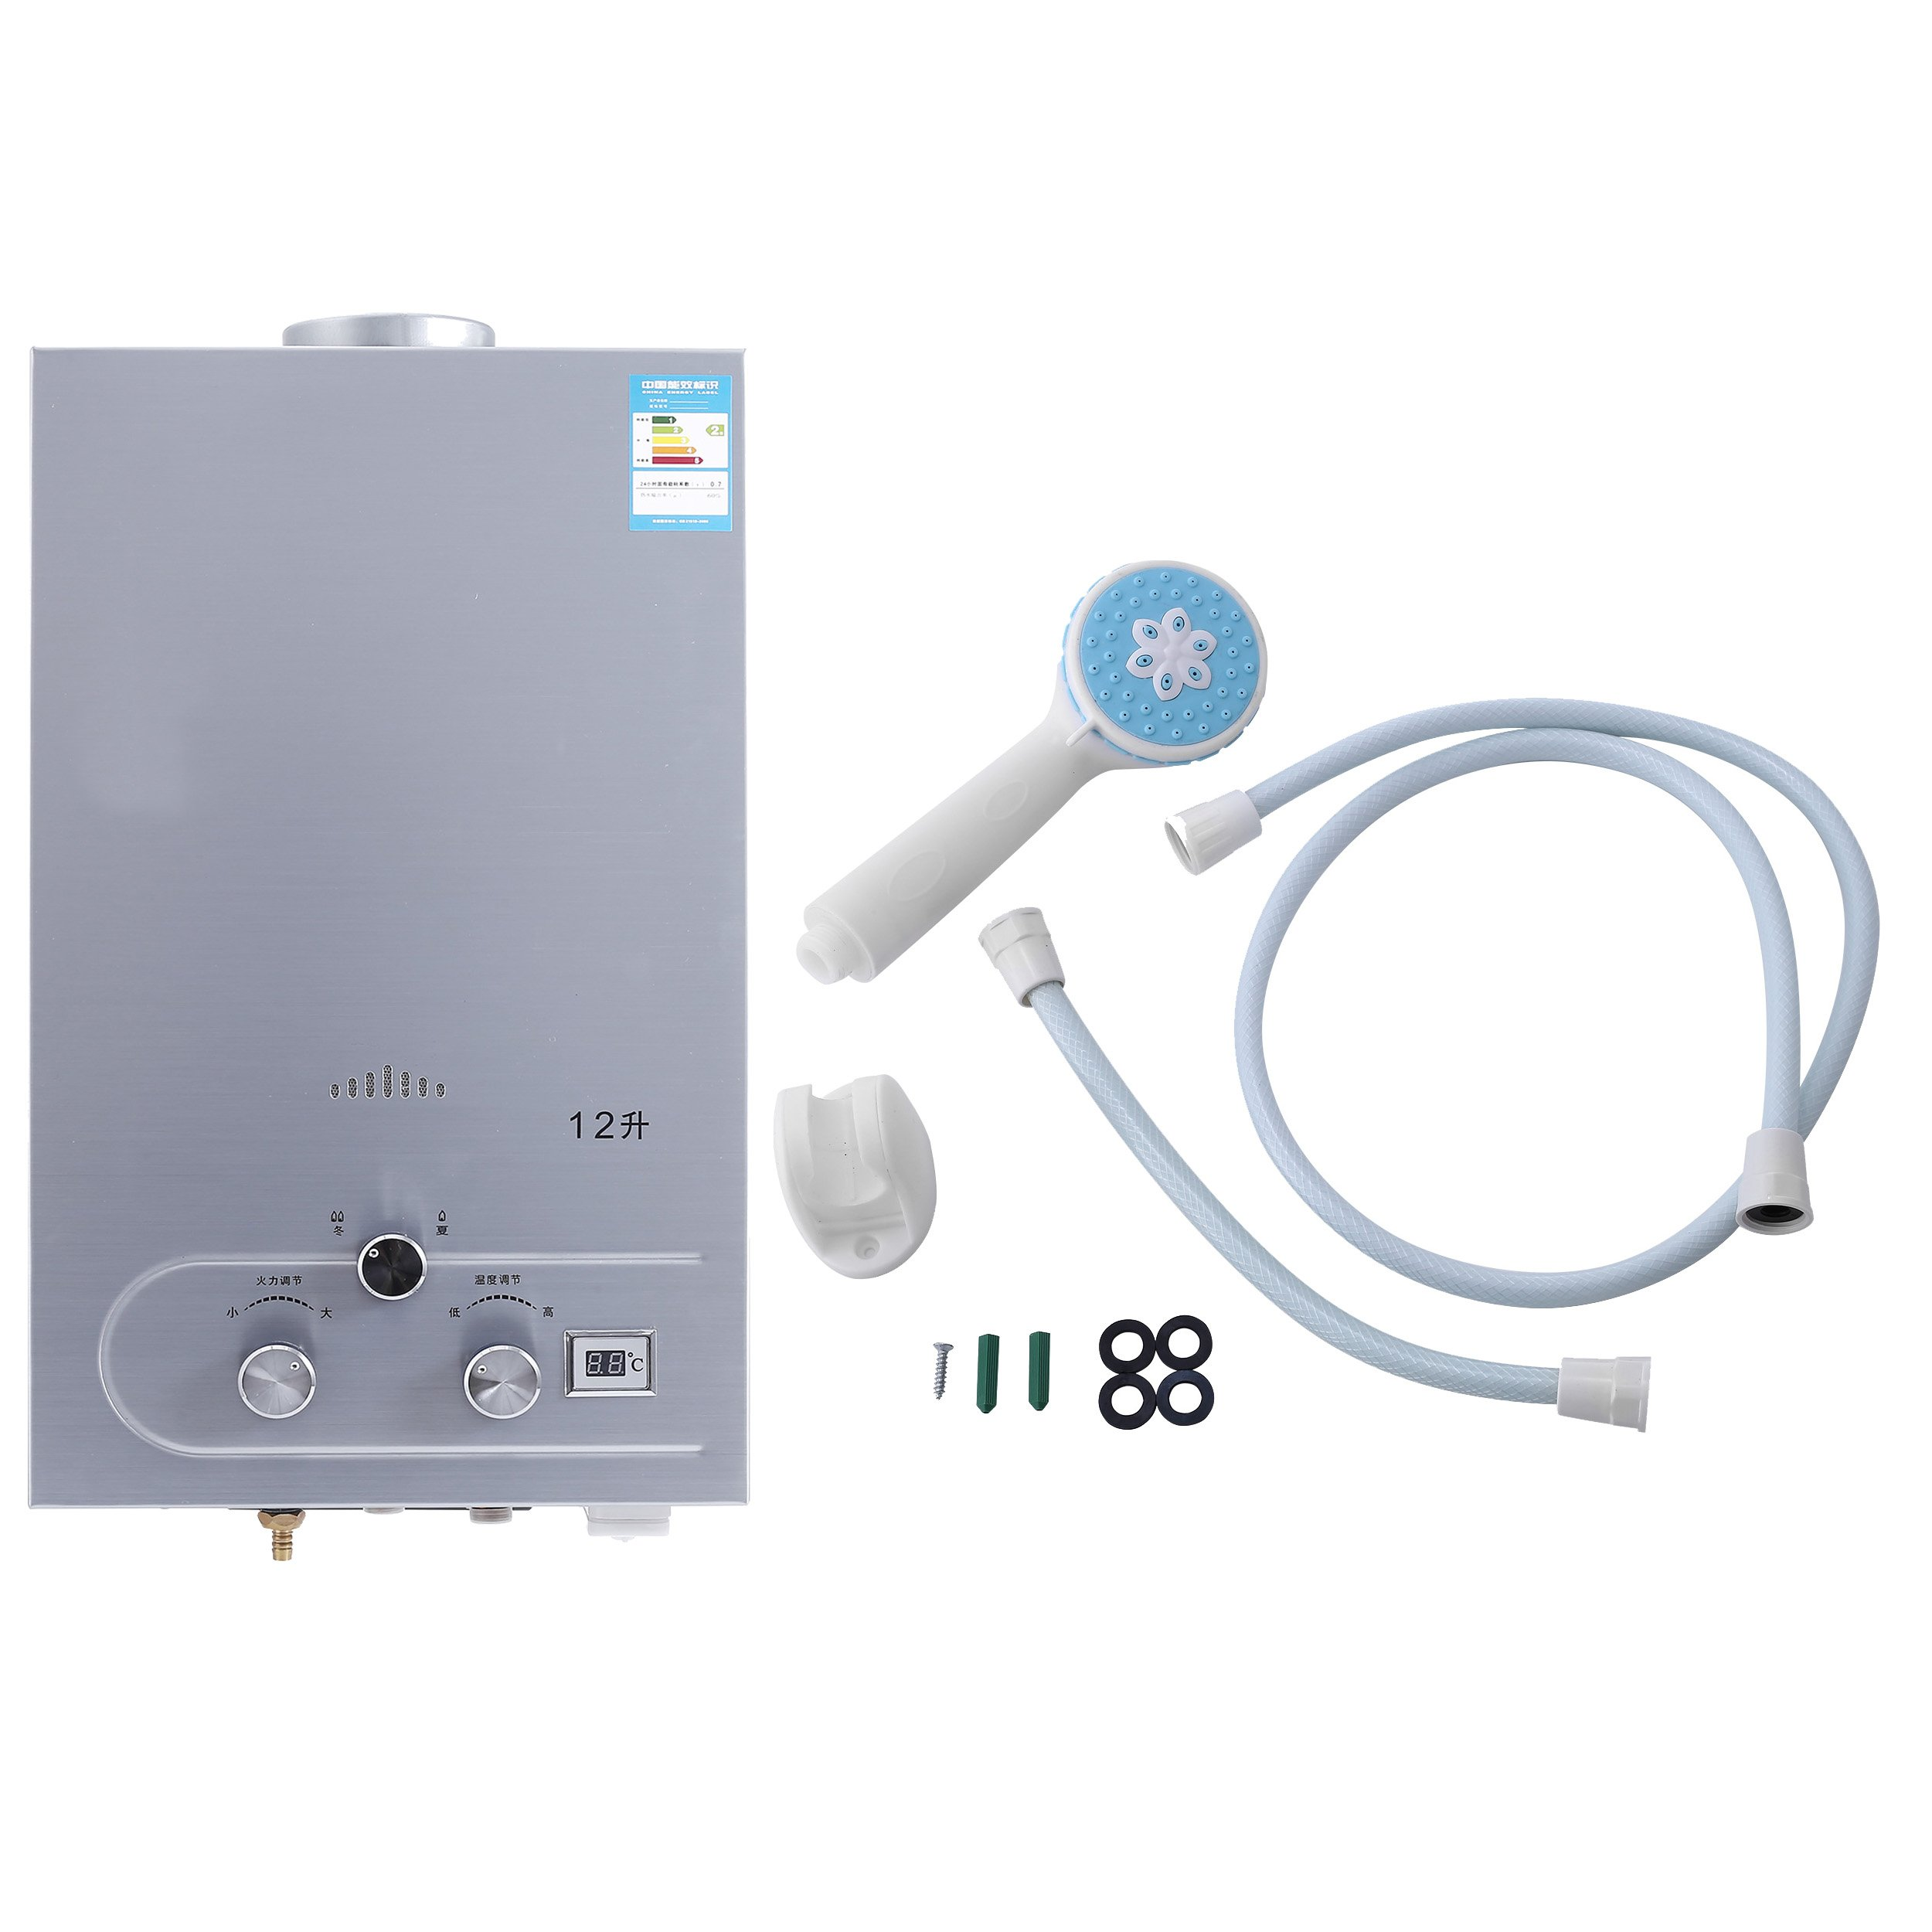 Happybuy 12L CNG Outdoor Portable Propane Tankless Water Heater 3.2GPM Natural Gas Water Heater Stainless Steel Propane Hot Water Heater (12L)